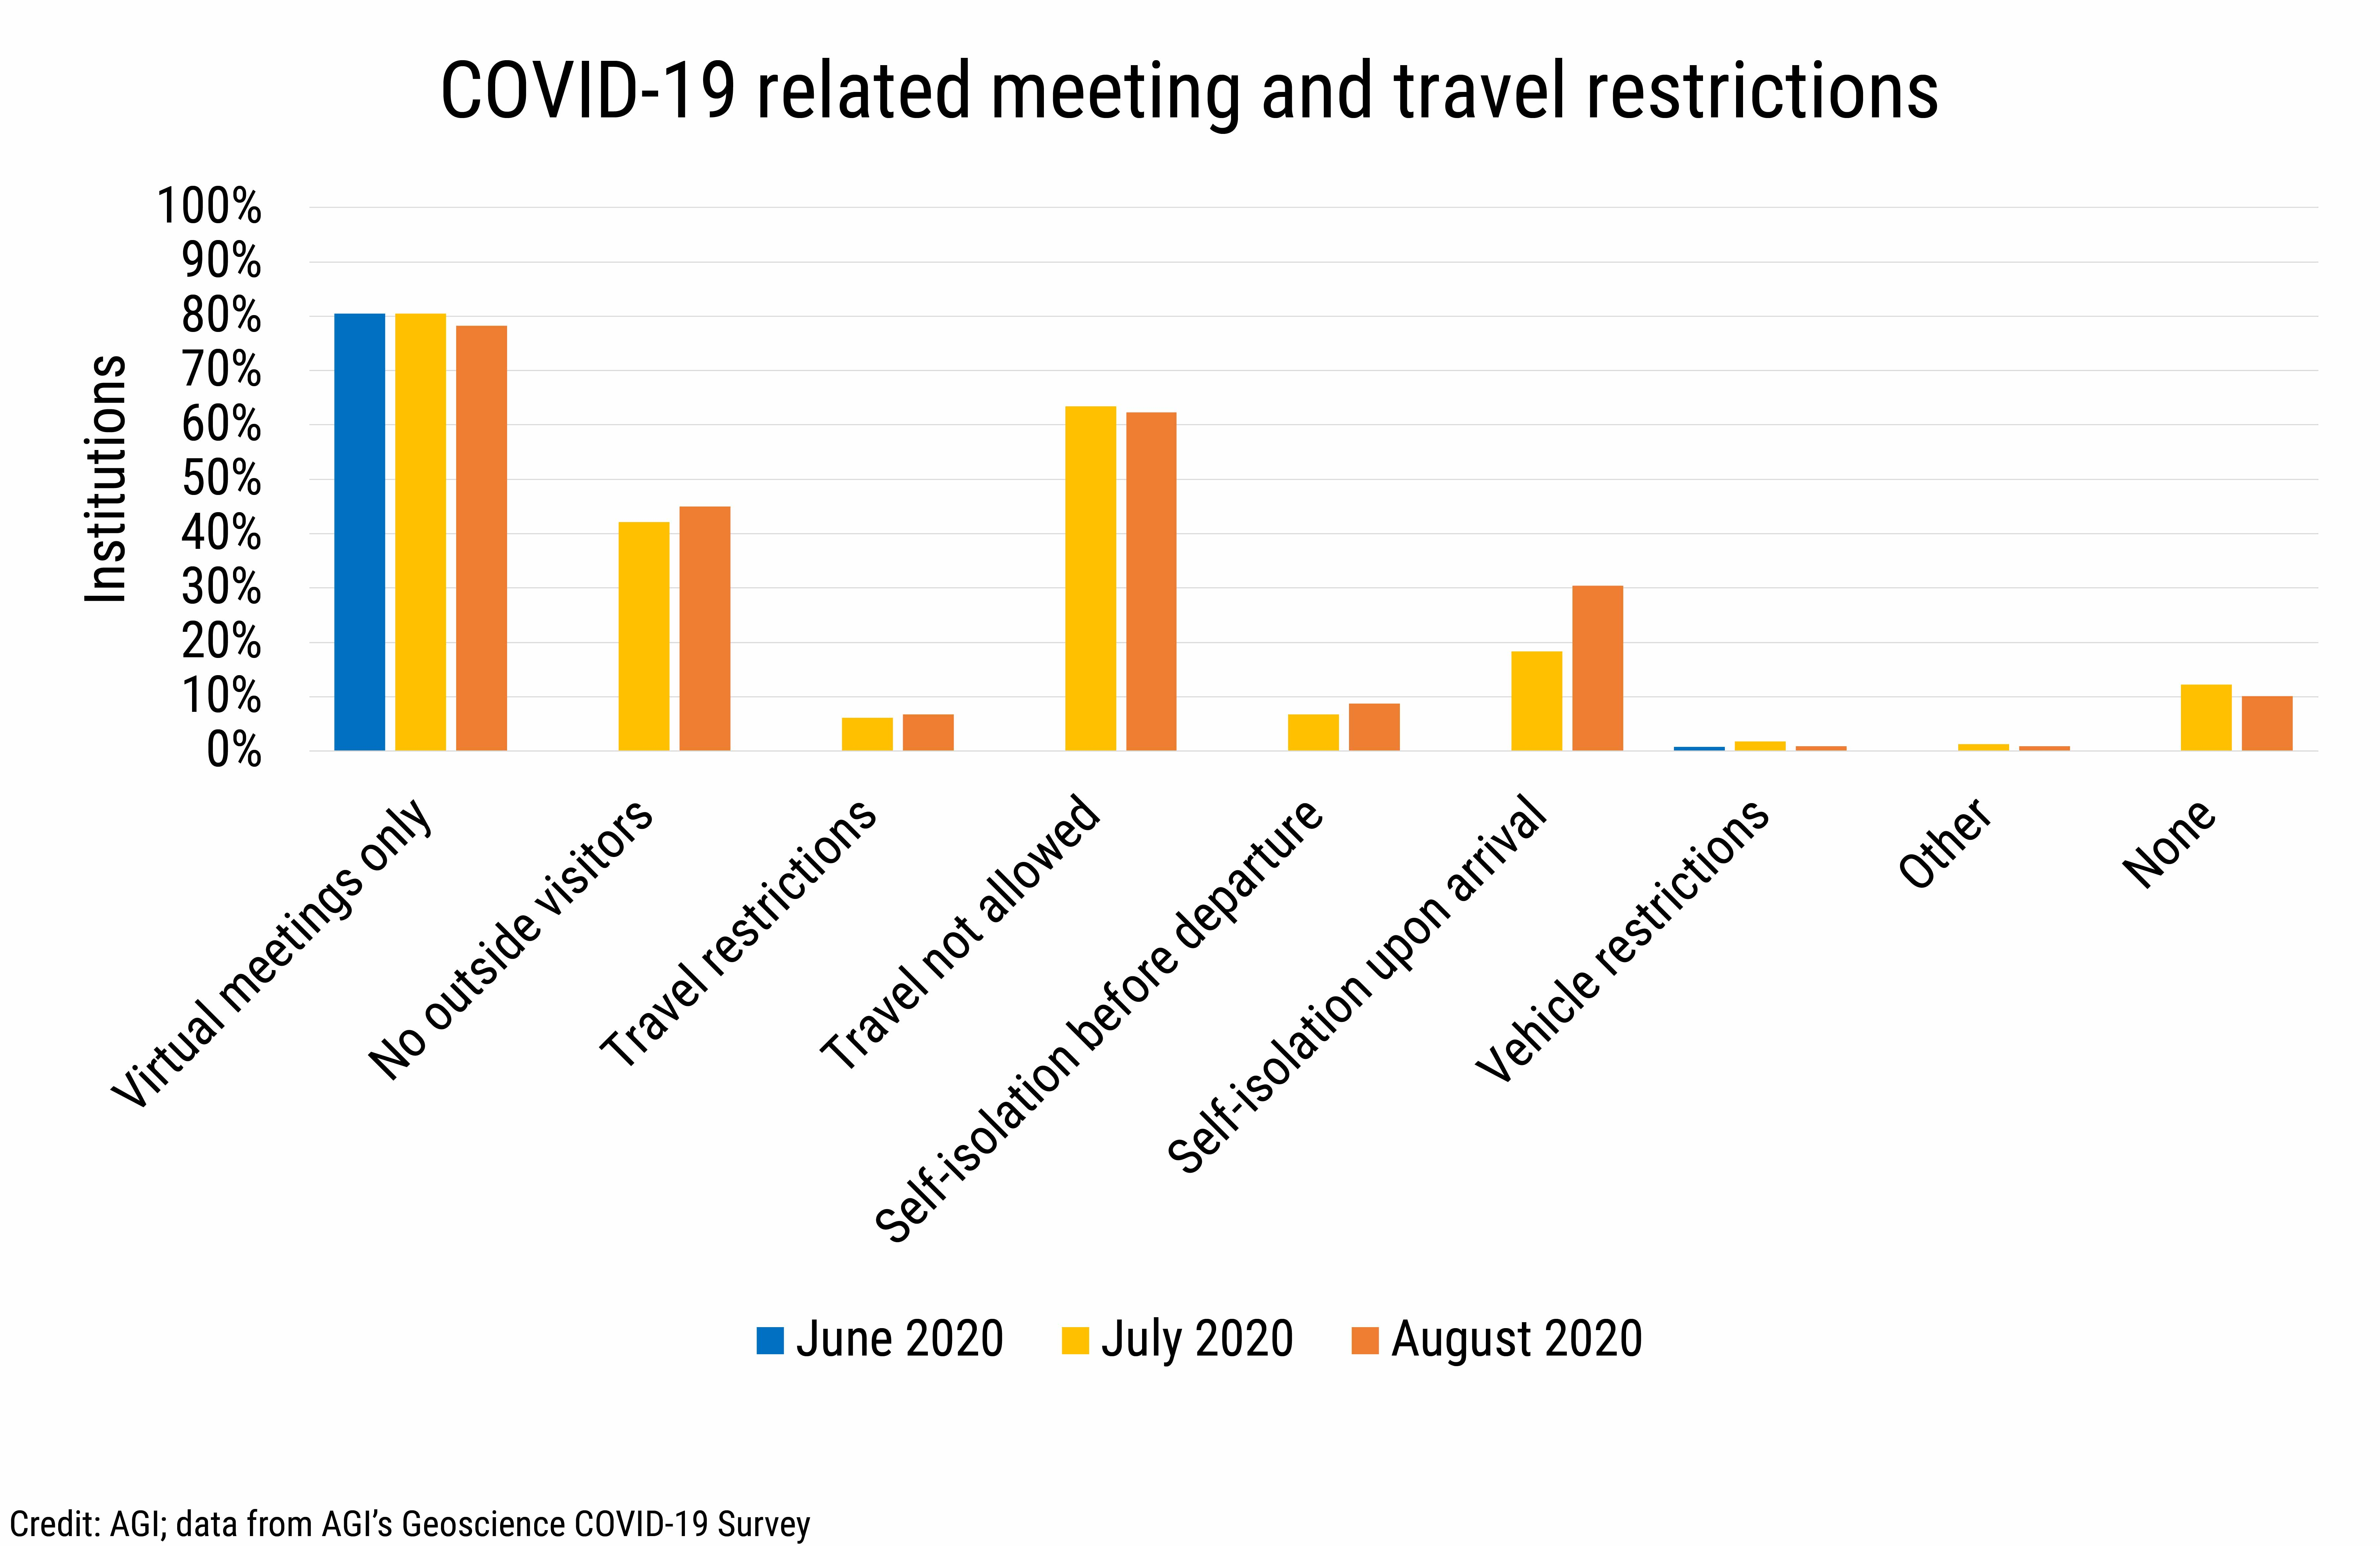 DB2020-021: chart 09: COVID-19 related meeting and travel restrictions (Credit: AGI; data from AGI's Geoscience COVID-19 Survey)